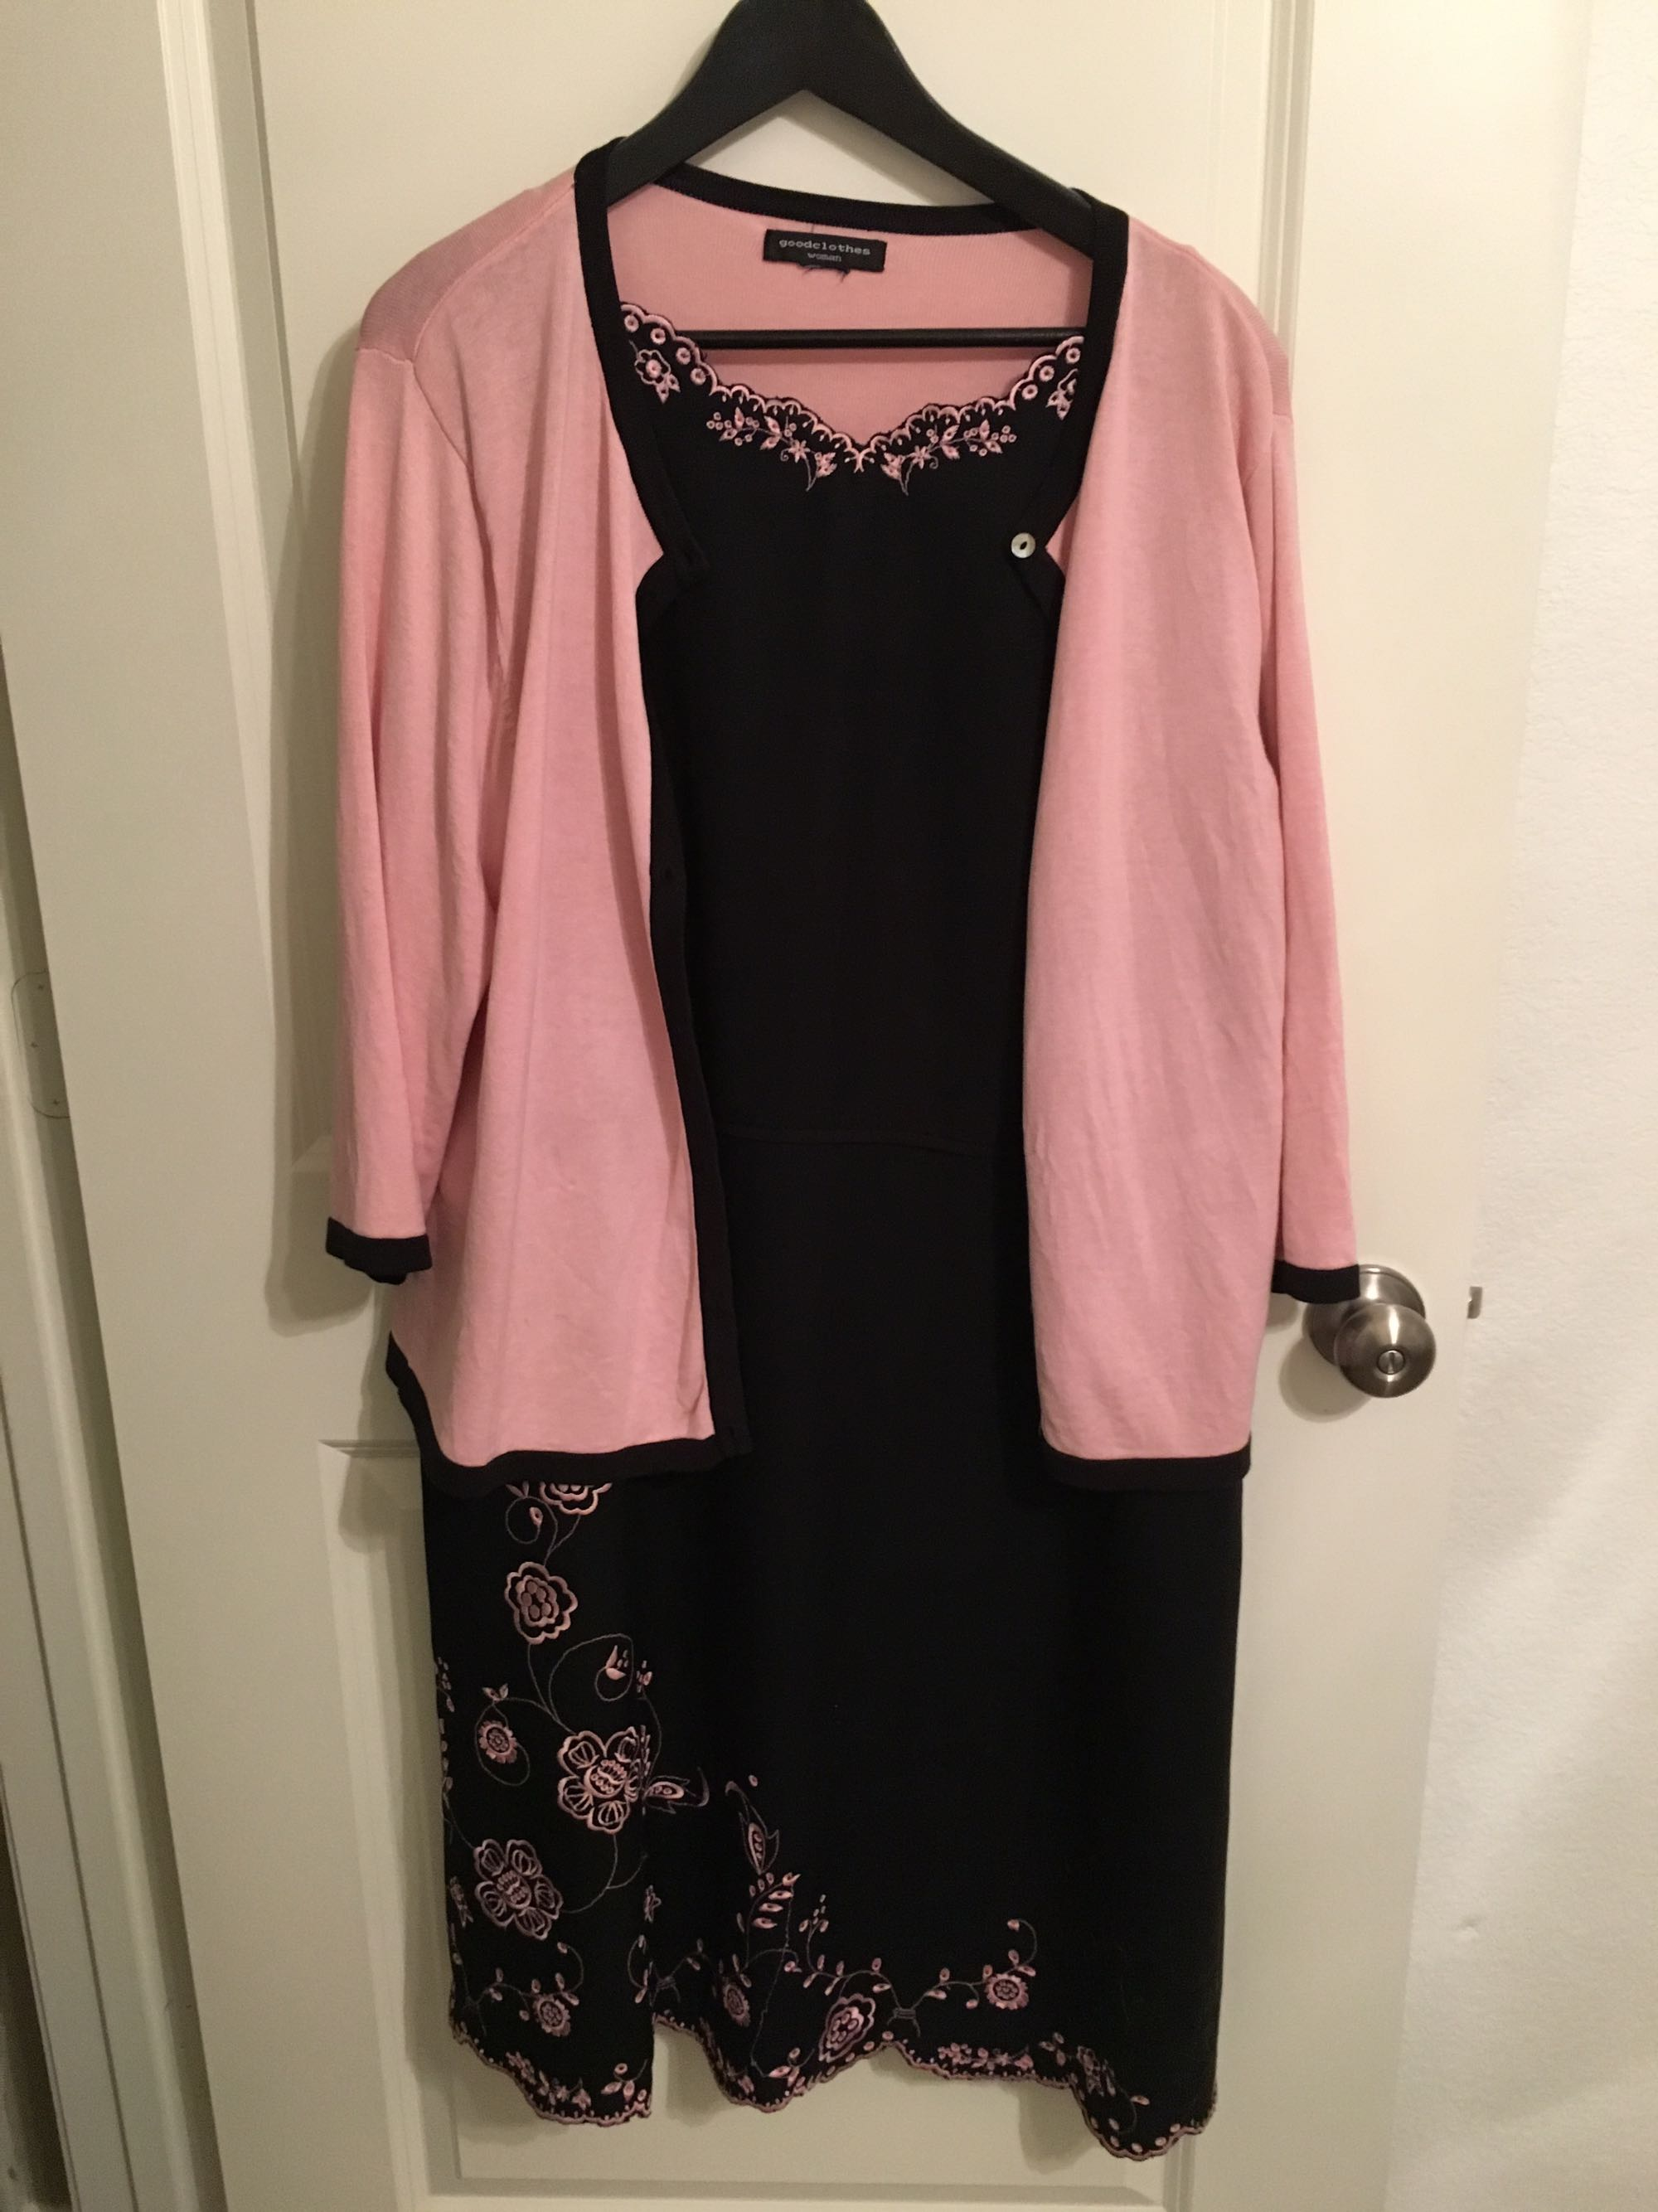 Black & Pink 2 Piece Dress, size 16